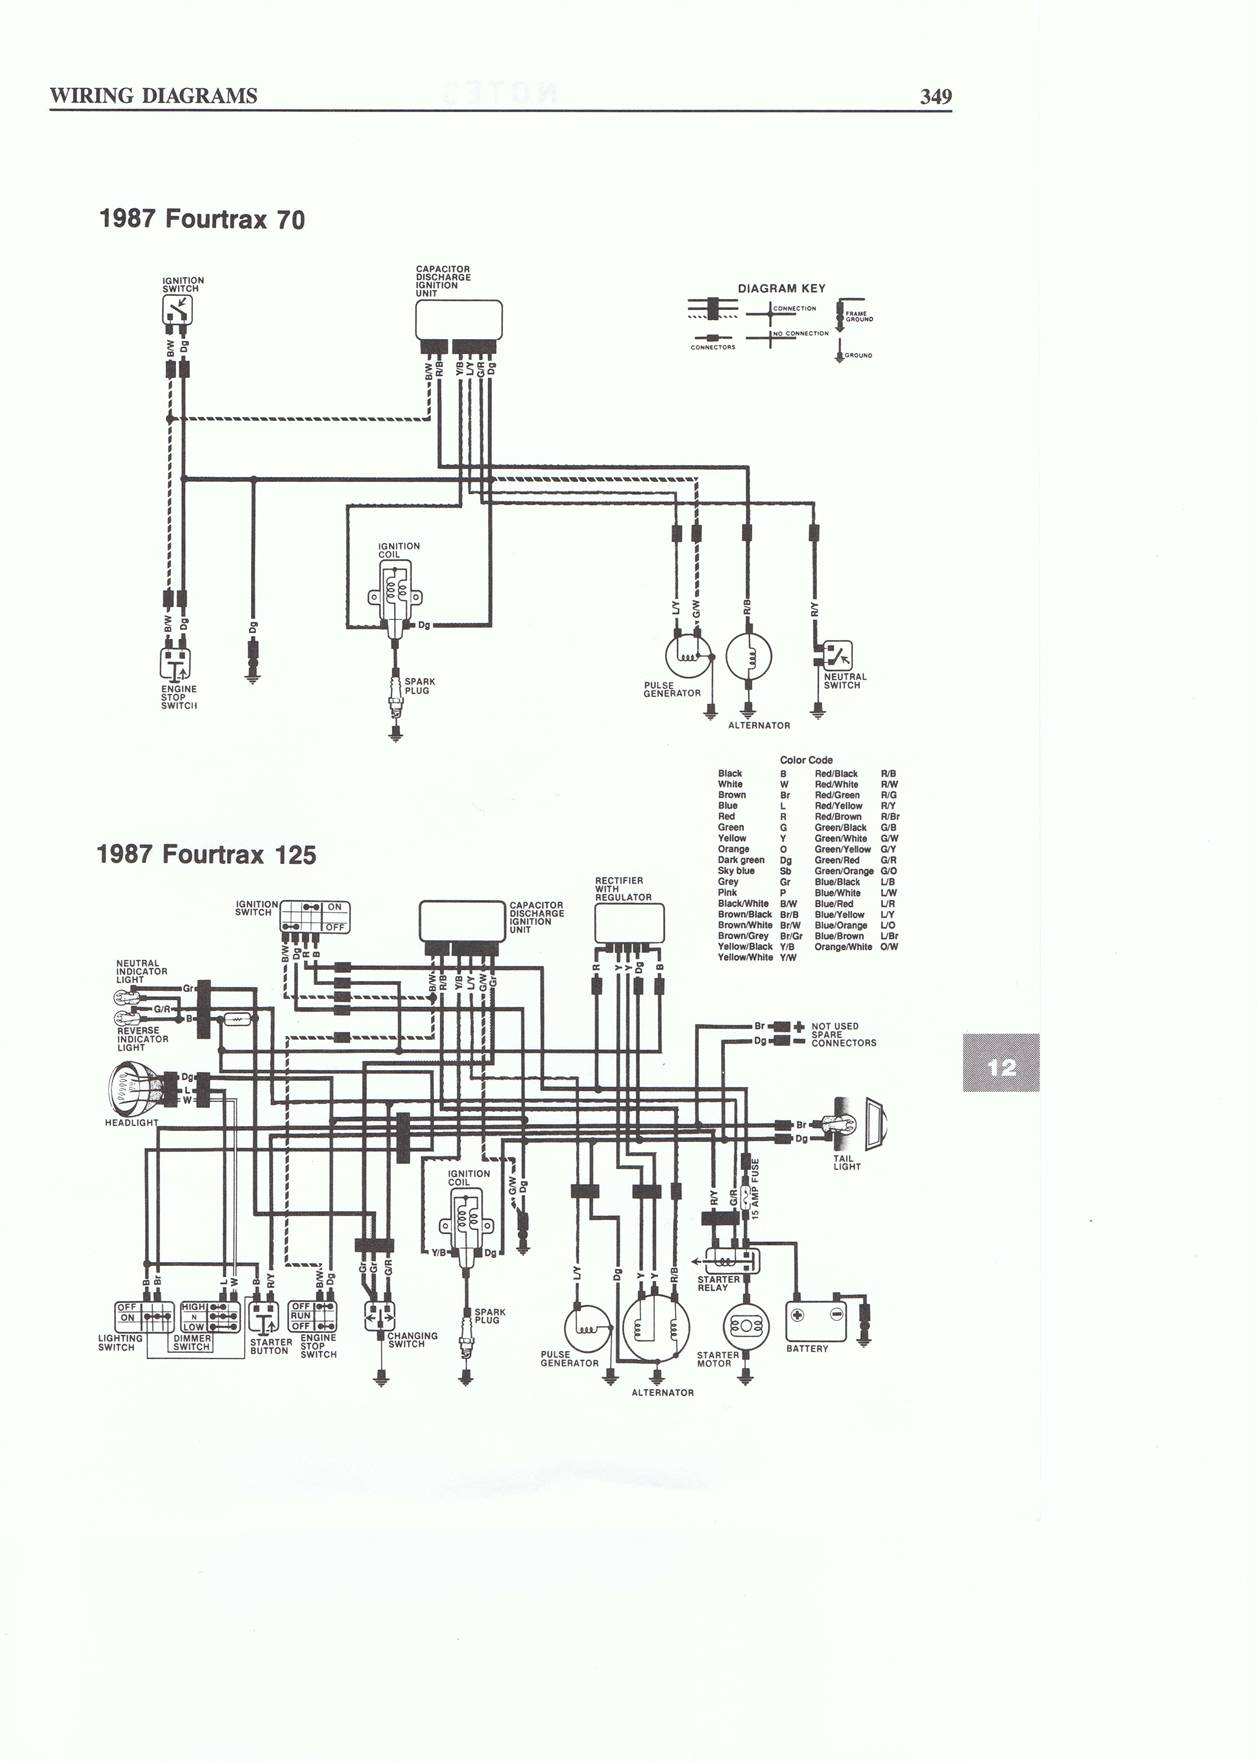 gy6 engine wiring diagram?t=1398725710 gy6 engine wiring diagram gy6 wiring schematic at bayanpartner.co